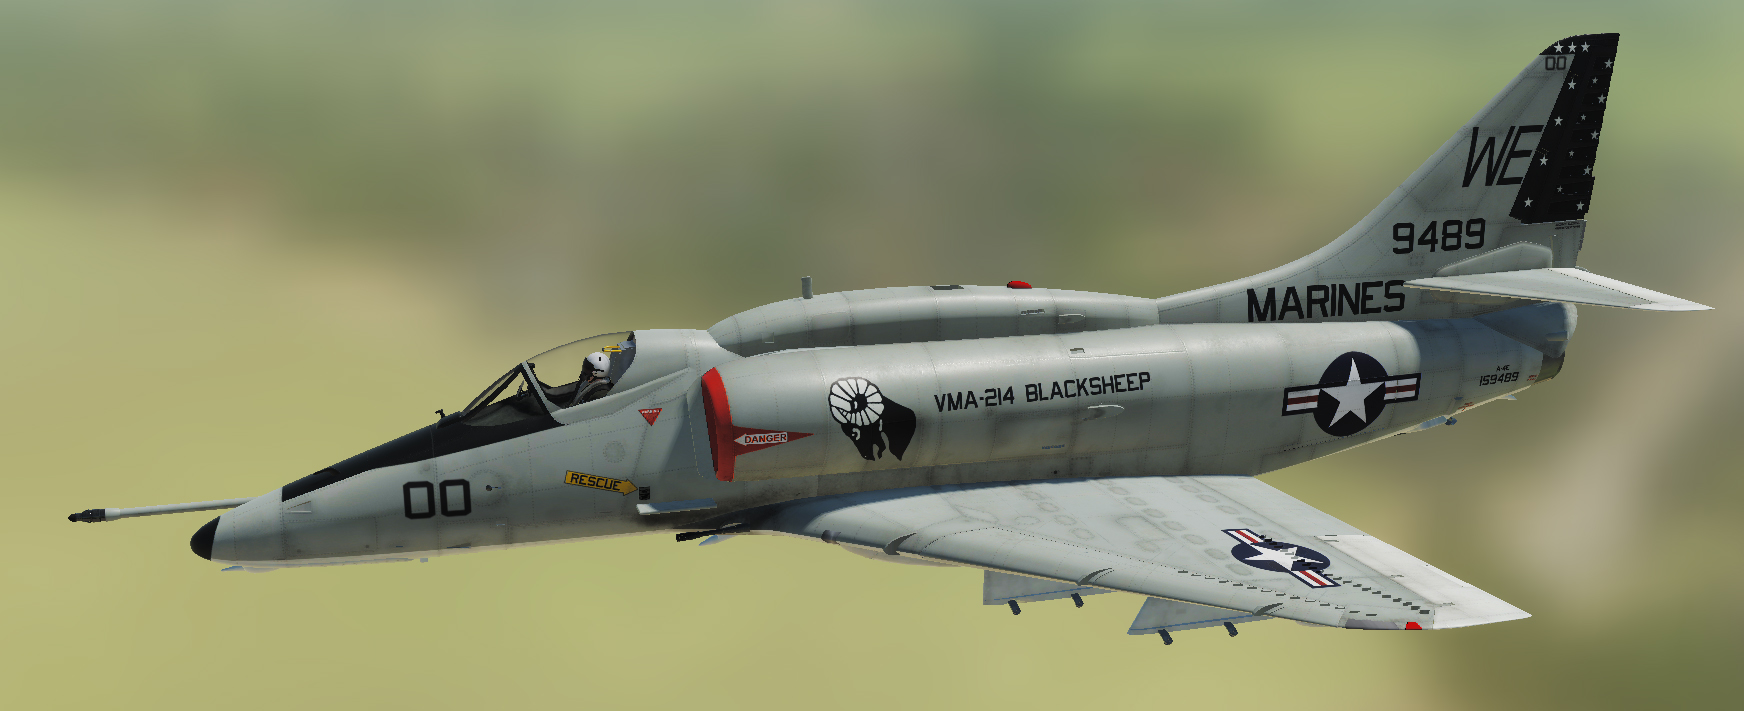 "A-4E: VMA-214 ""Black Sheep"" Skin Pack"